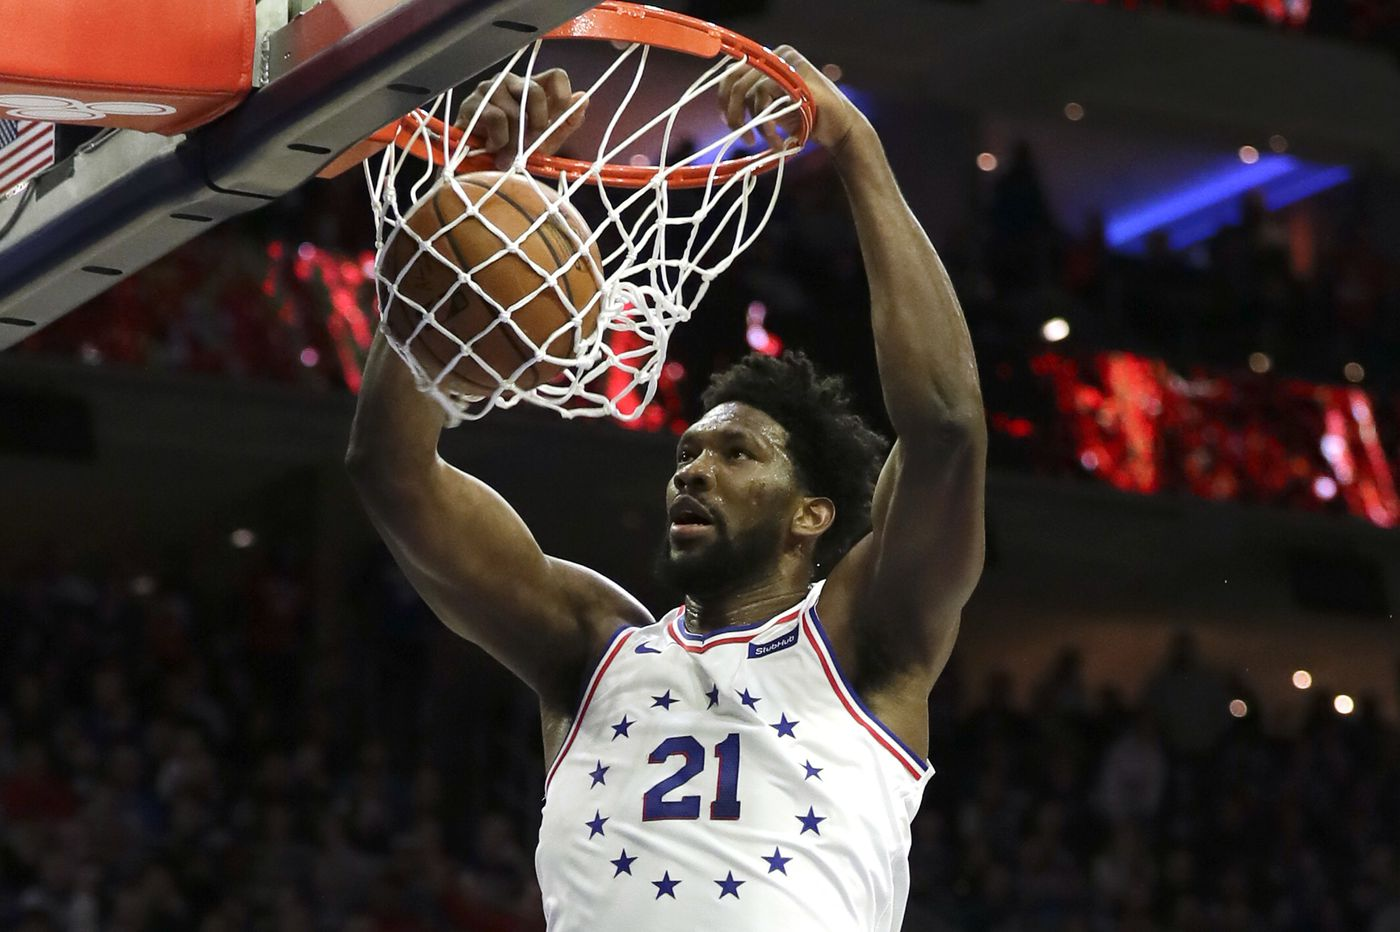 How popular is Joel Embiid on social media? Analysis shows the hottest sports stars on Twitter and Instagram